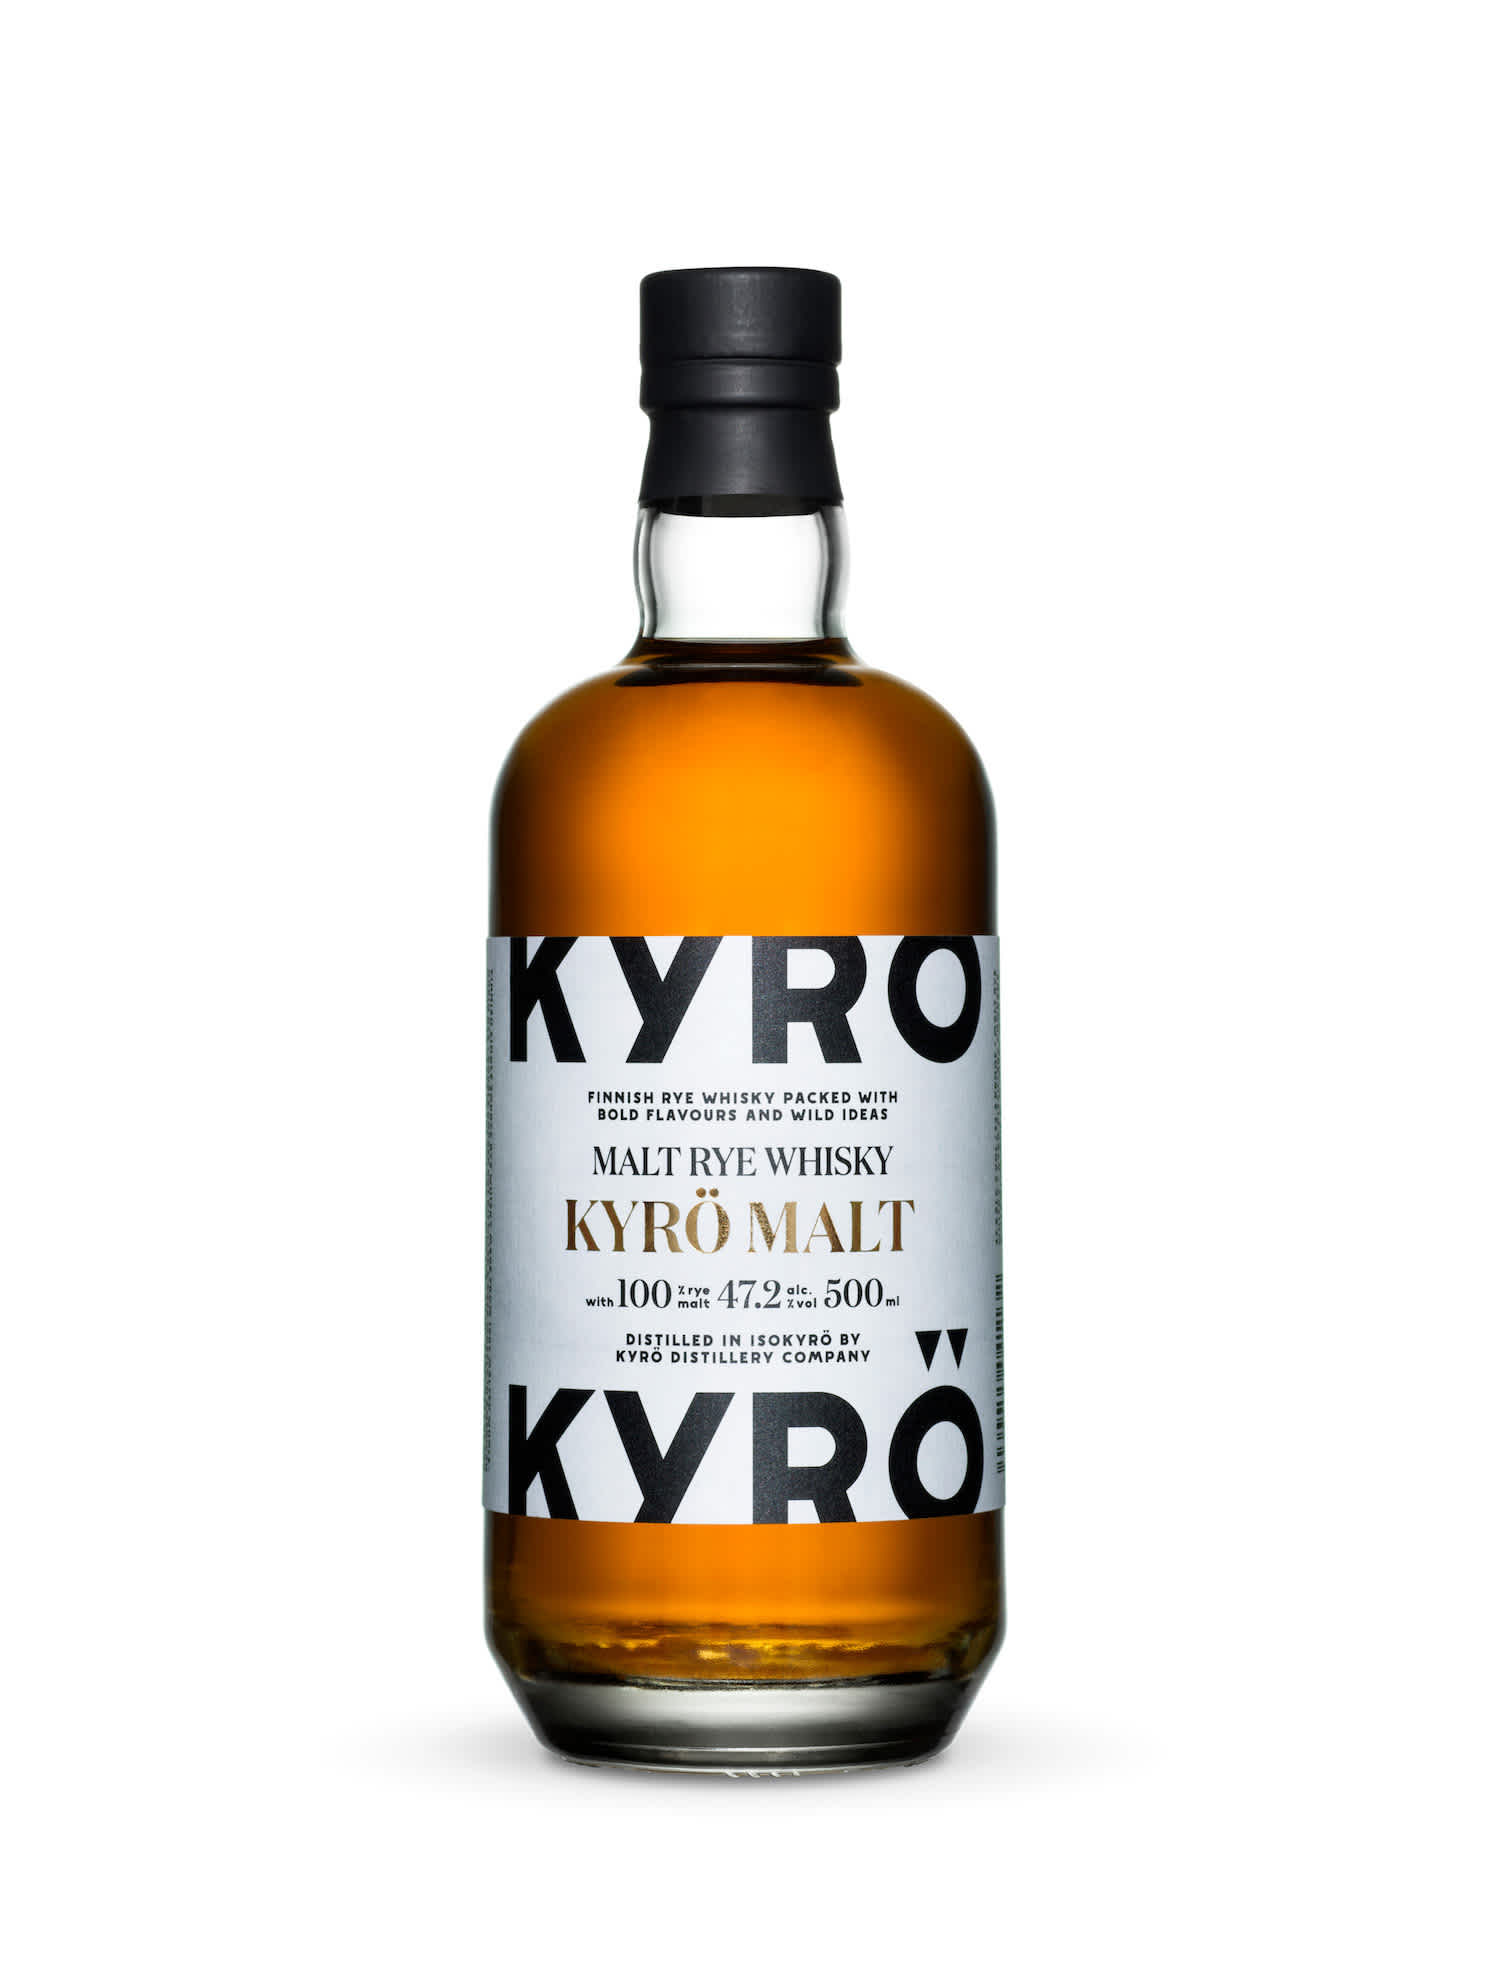 Product photo: 0,5 l bottle of award-winning, Finnish rye whisky from Kyrö Distillery Company.